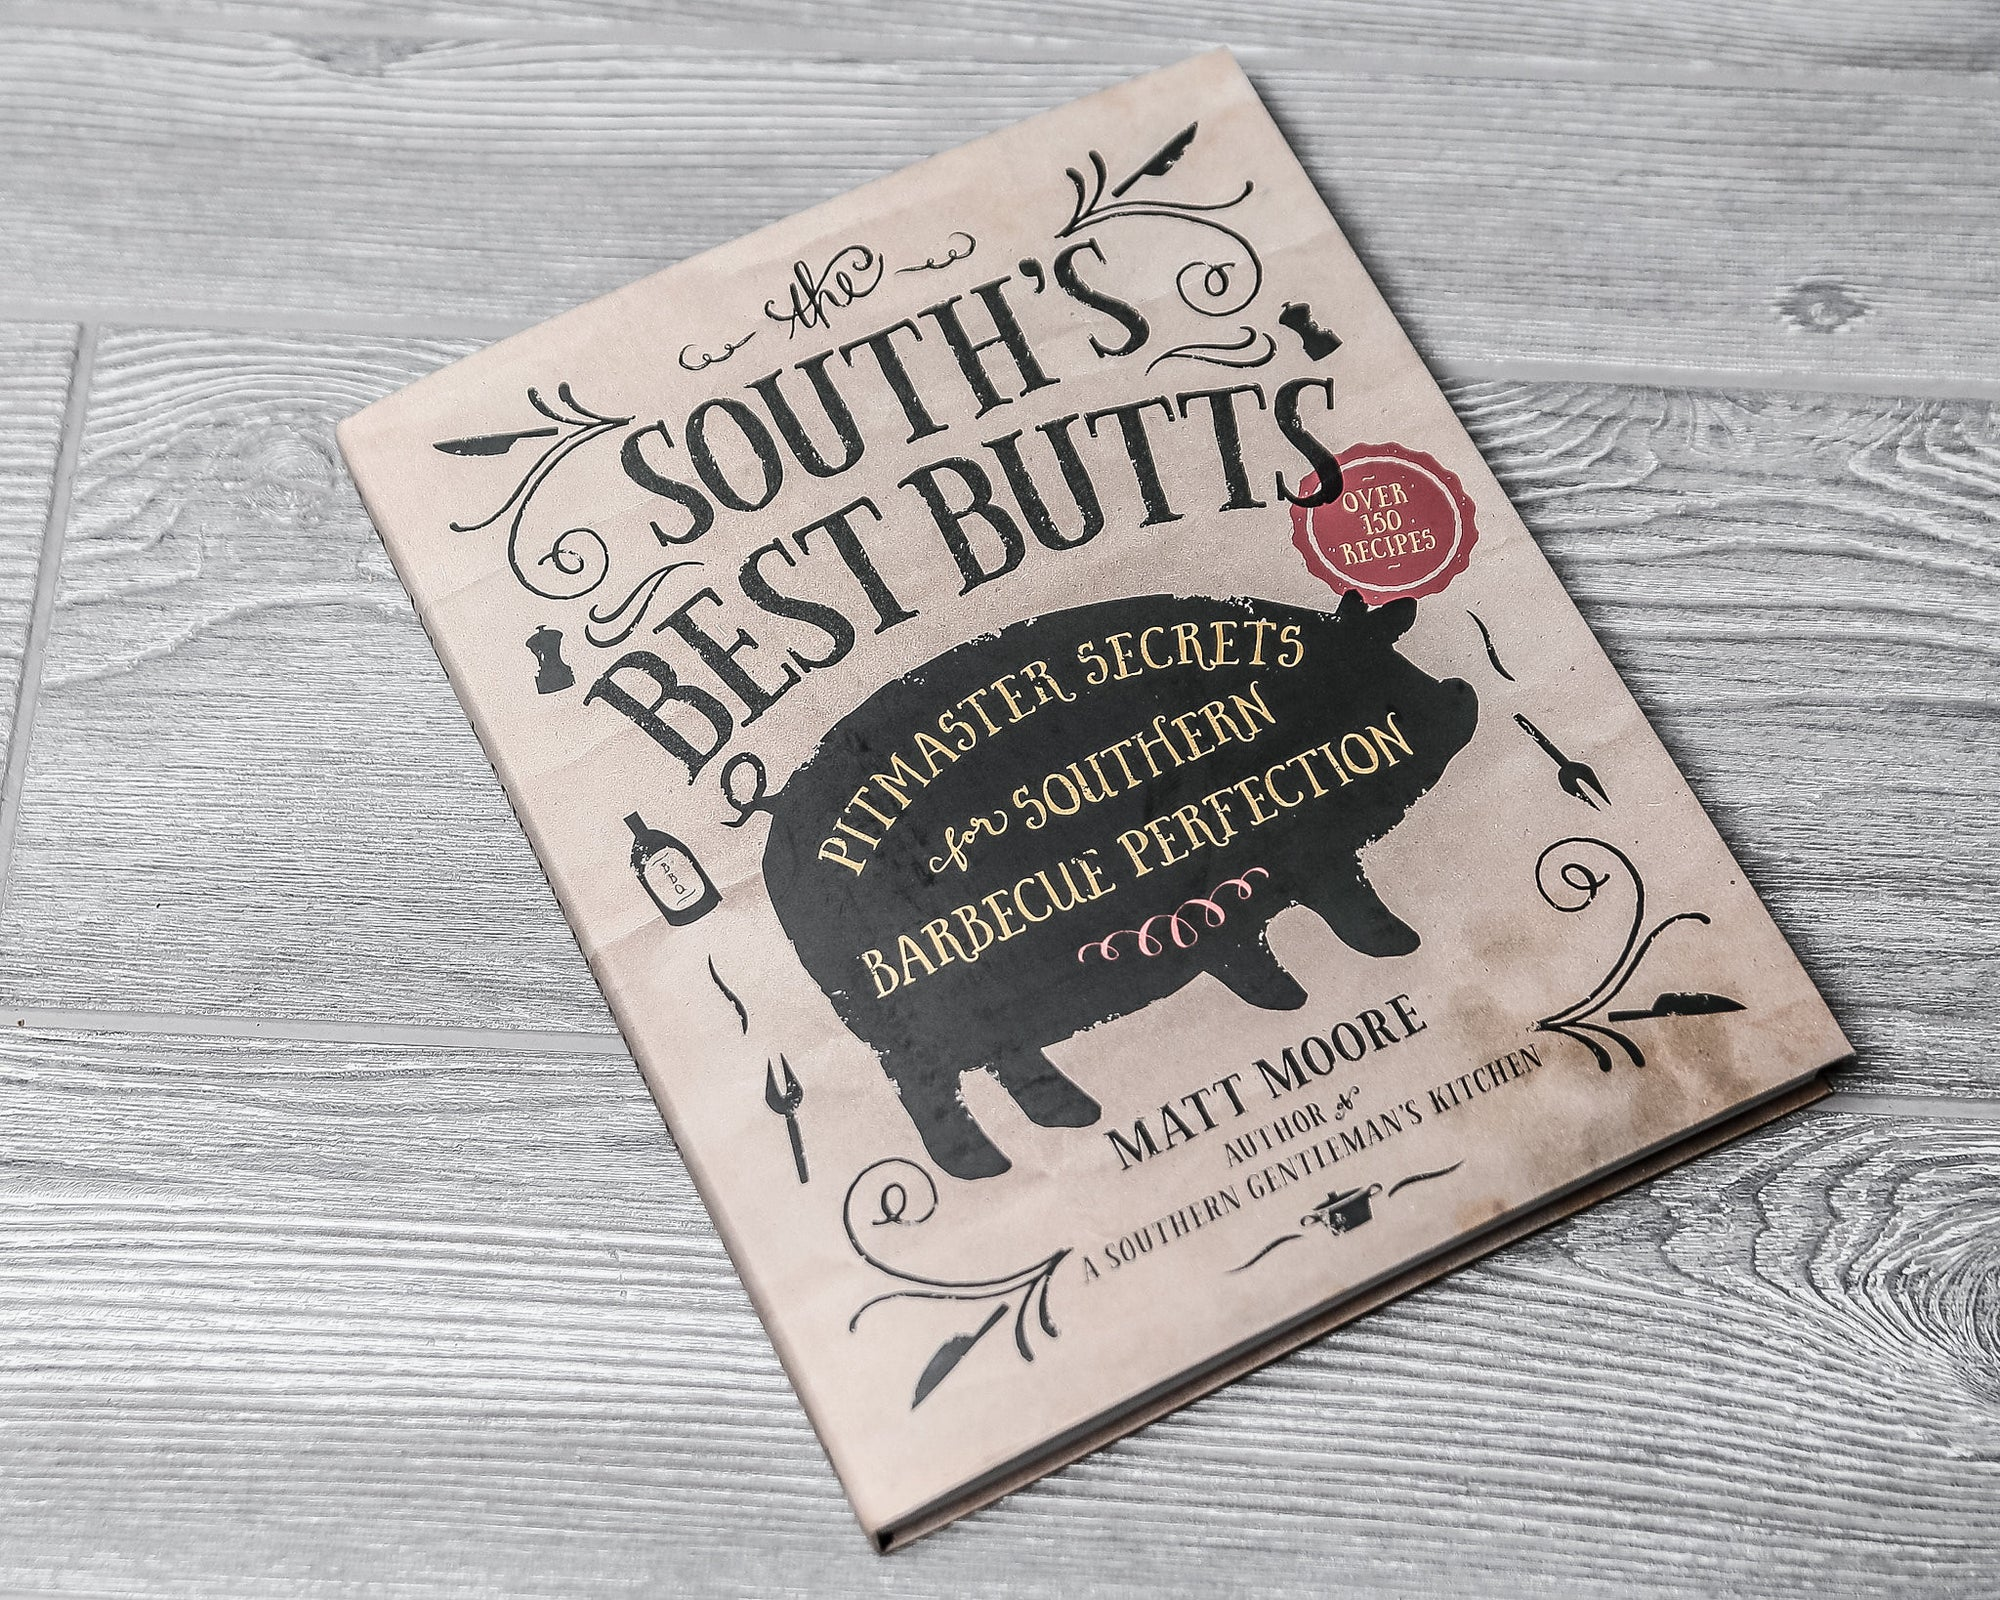 EastWest Bottlers - The South's Best Butts